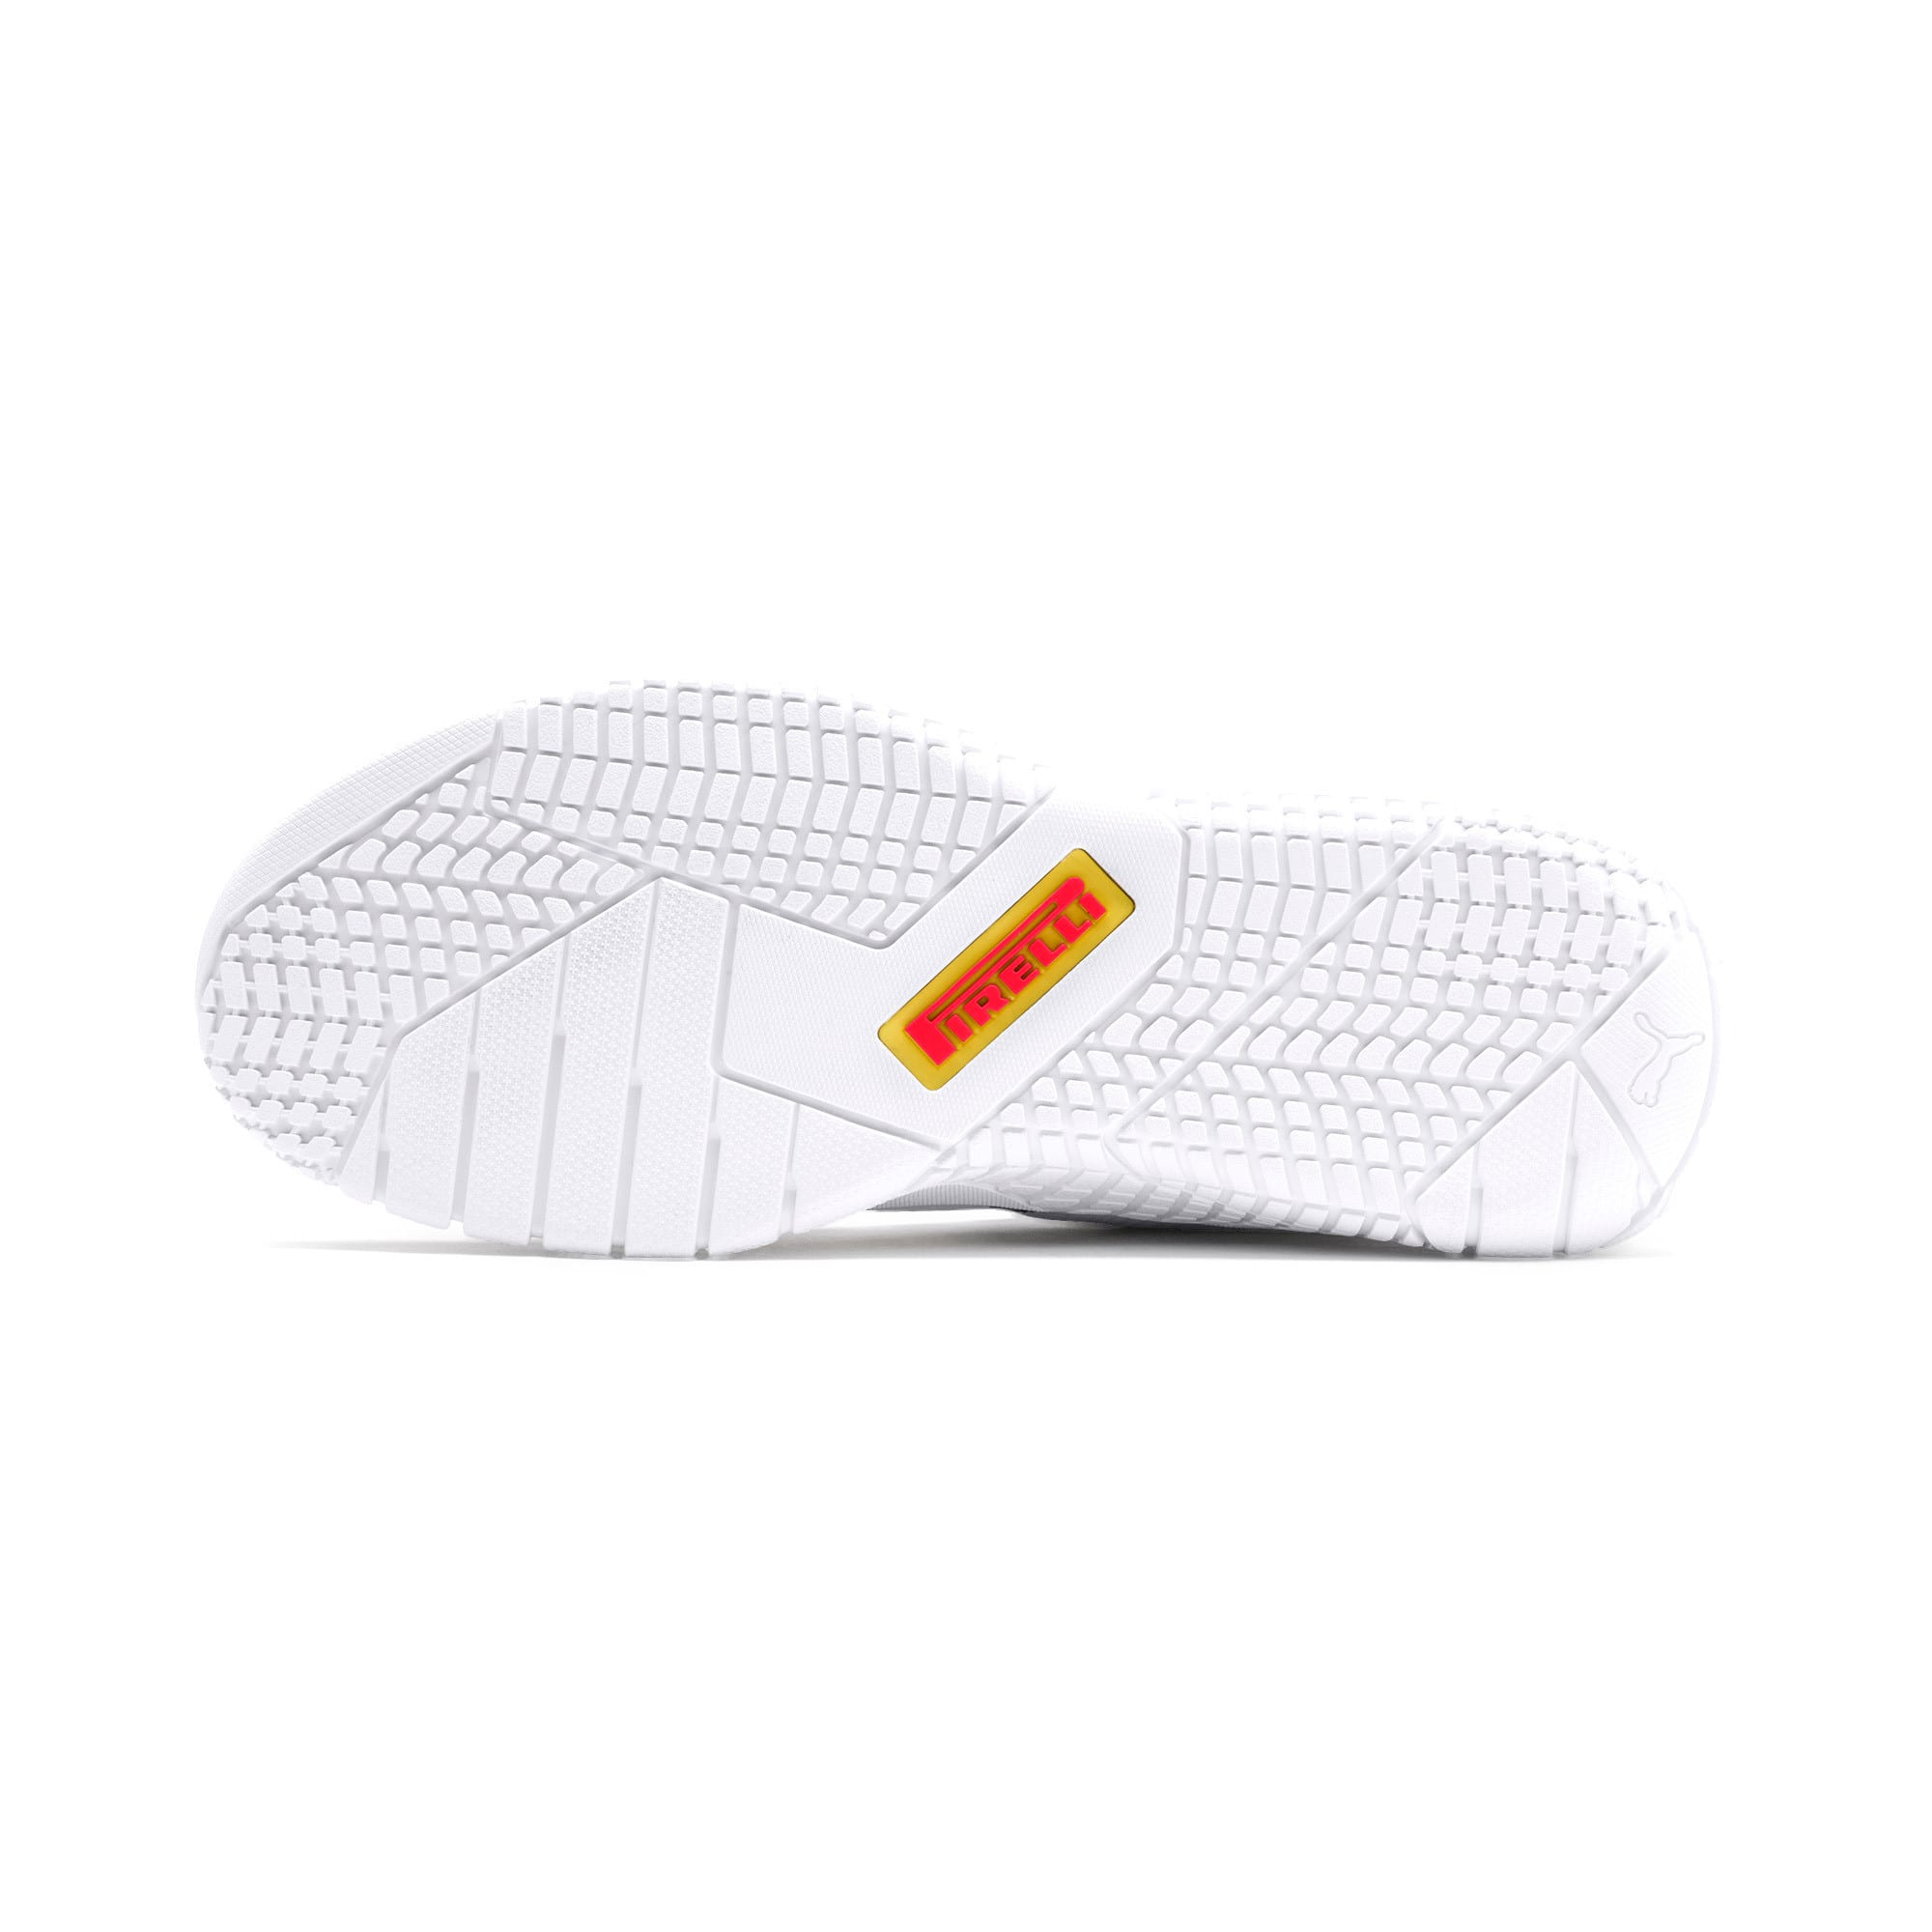 Thumbnail 5 of Scarpe da ginnastica Pirelli Replicat-X, White-Hyacinth Viol-Red, medium